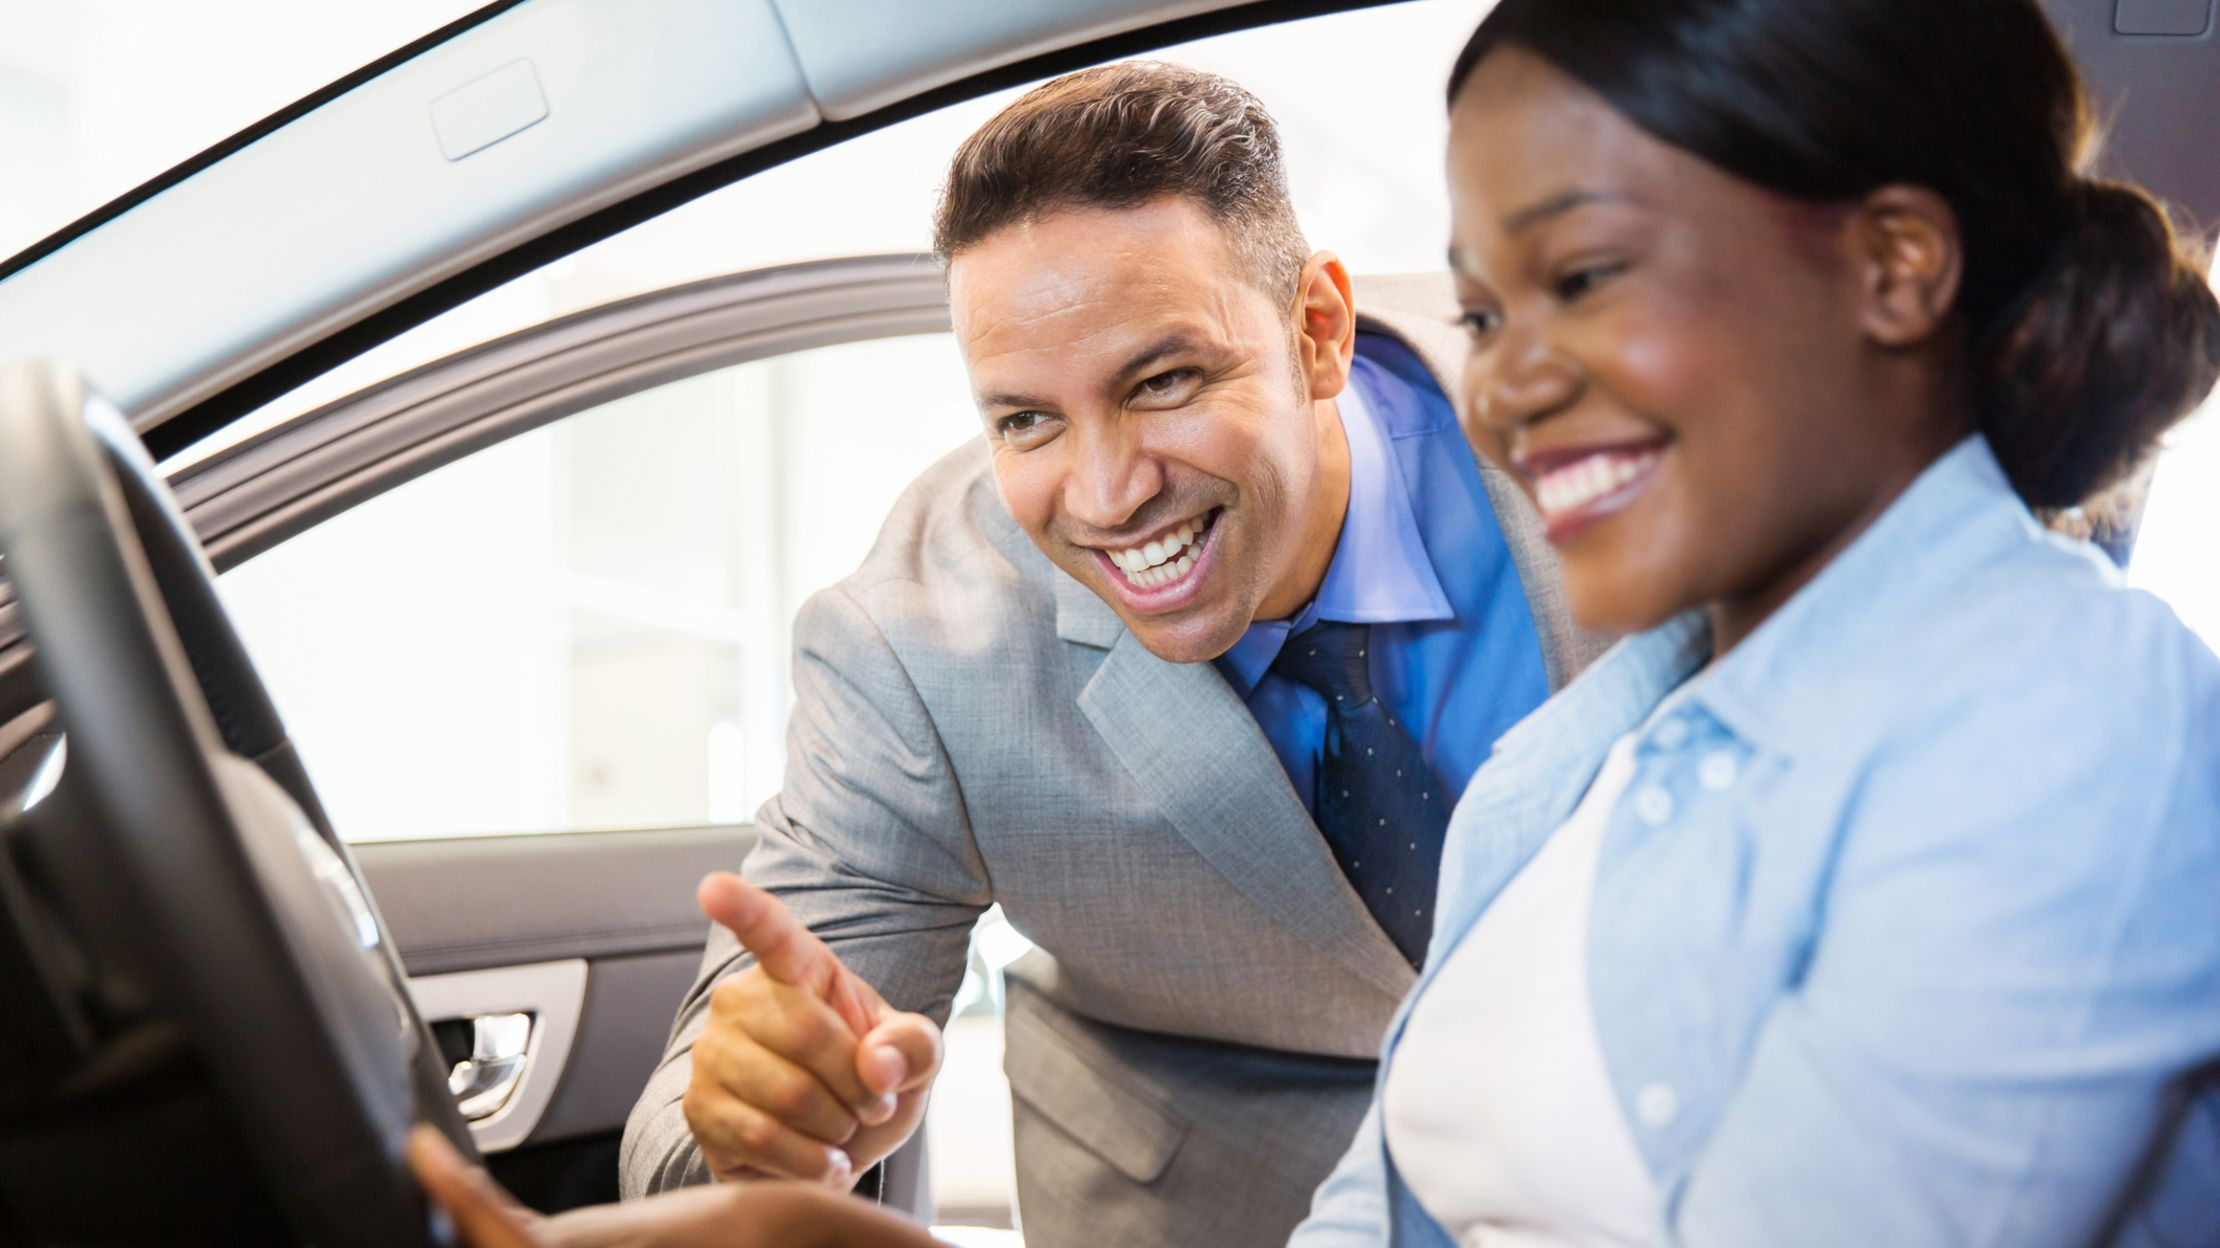 8 Tips for Haggling at a Dealership, According to Insiders